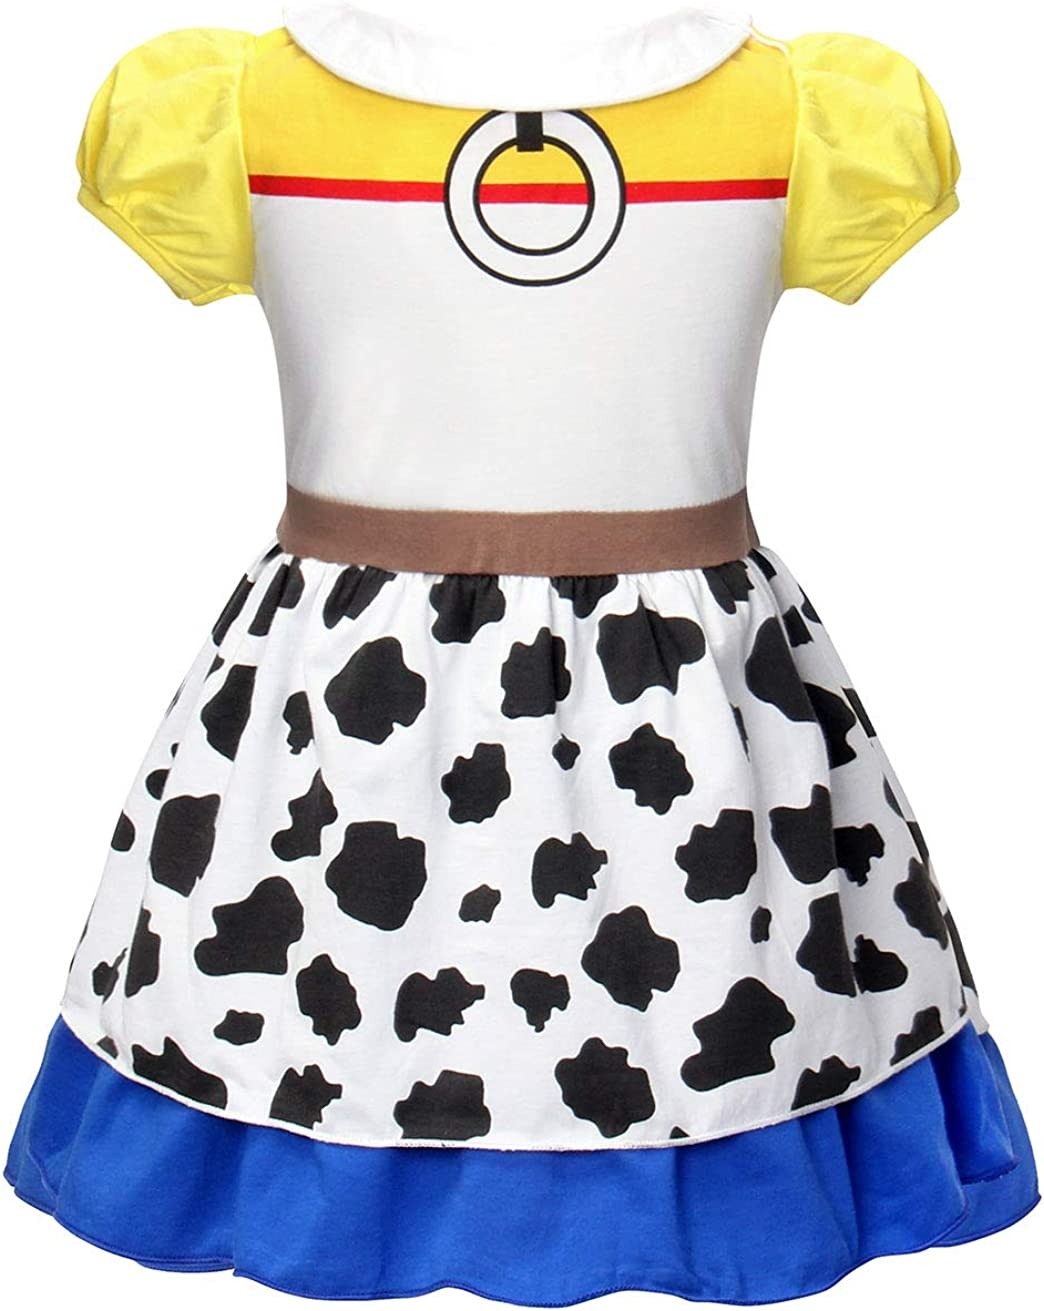 AmzBarley Girls Costumes Fancy Party Halloween Dress Up Kids Holiday Birthday Outfit Dresses 1-9 Years